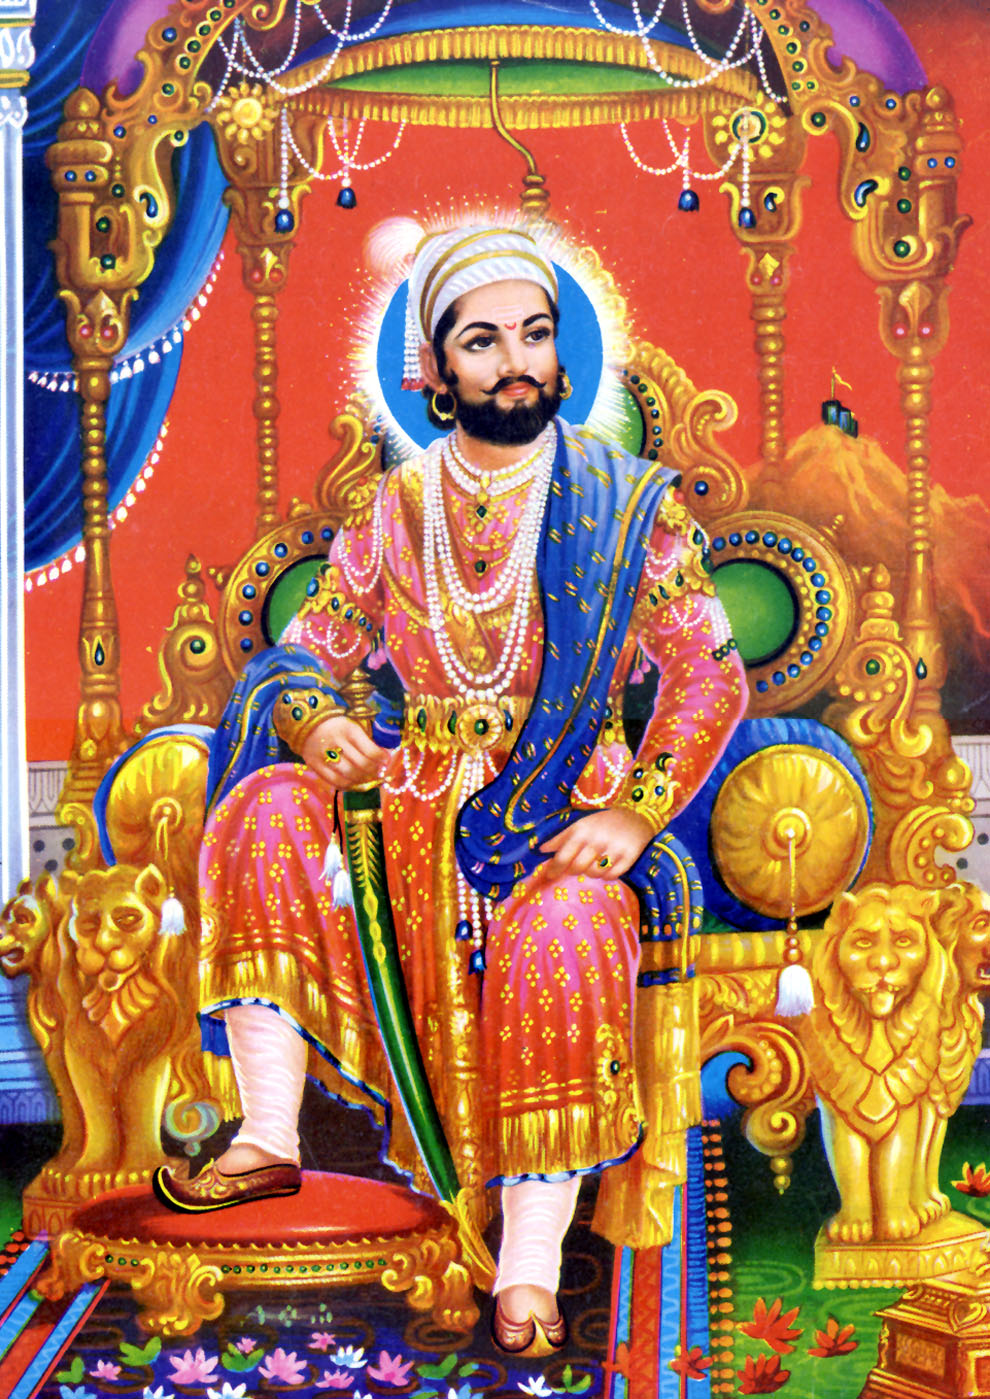 essay on bijapur Shivaji bhonsle (marathi [ʃiʋaˑɟiˑ bʱoˑs(ə)leˑ] c 1627/1630 – 3 april 1680) was an indian warrior king and a member of the bhonsle maratha clanshivaji carved out an enclave from the.